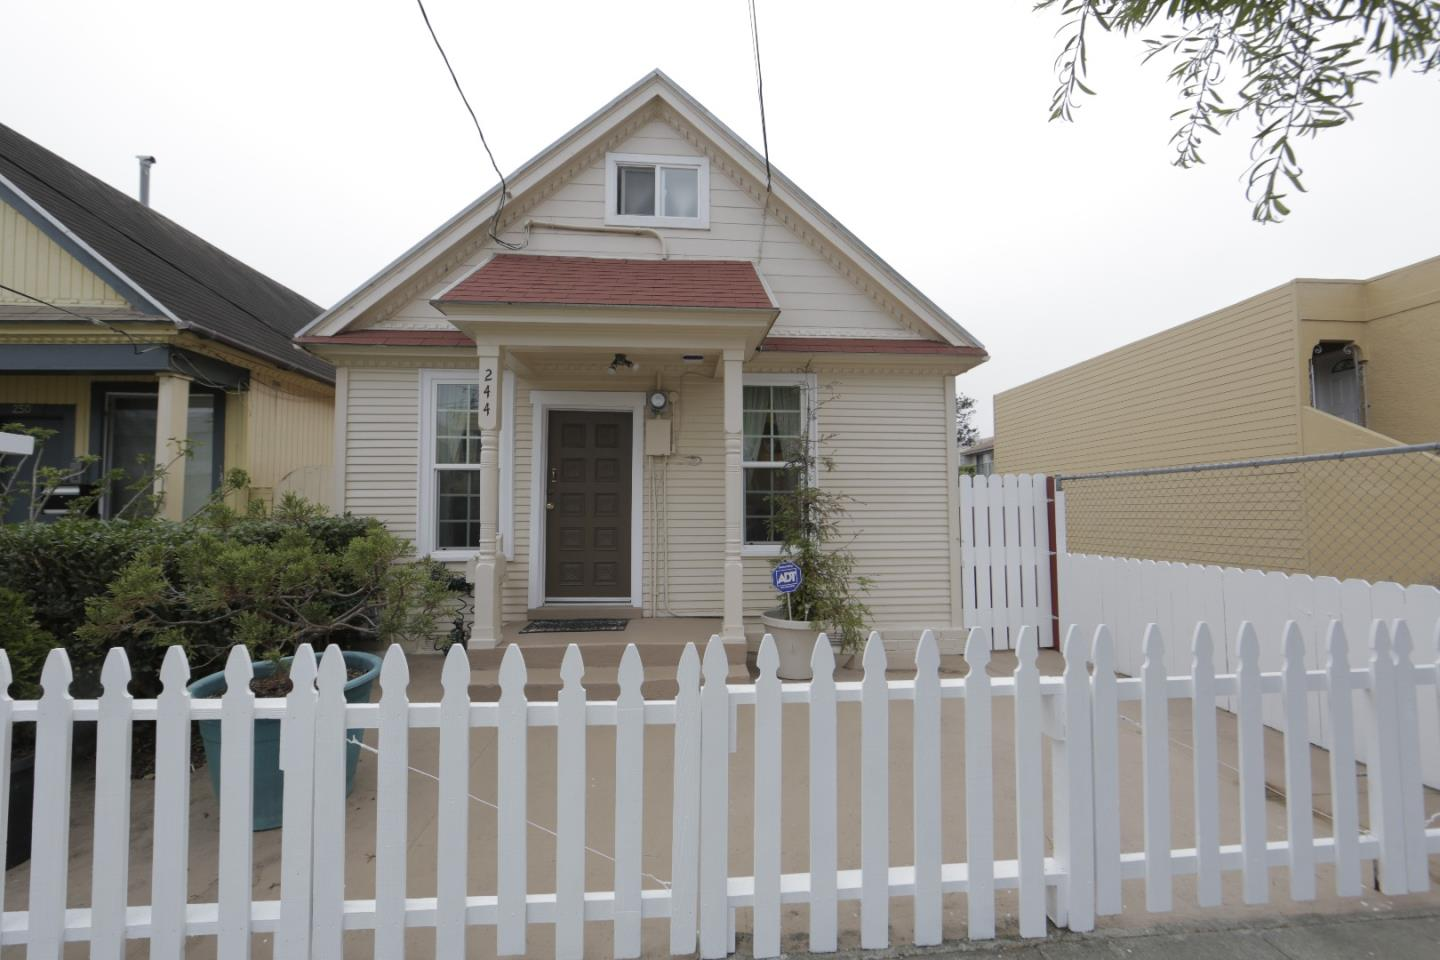 244 Willits St, Daly City, CA 94014